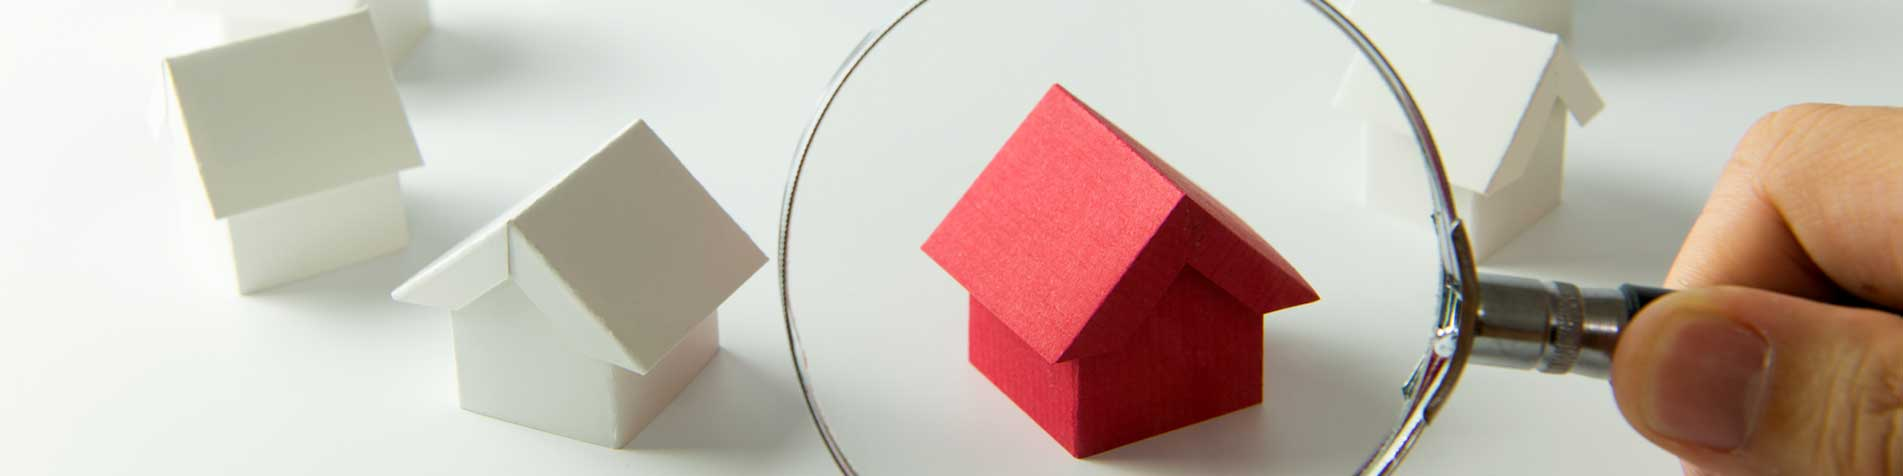 magnifying glass over red wooden house